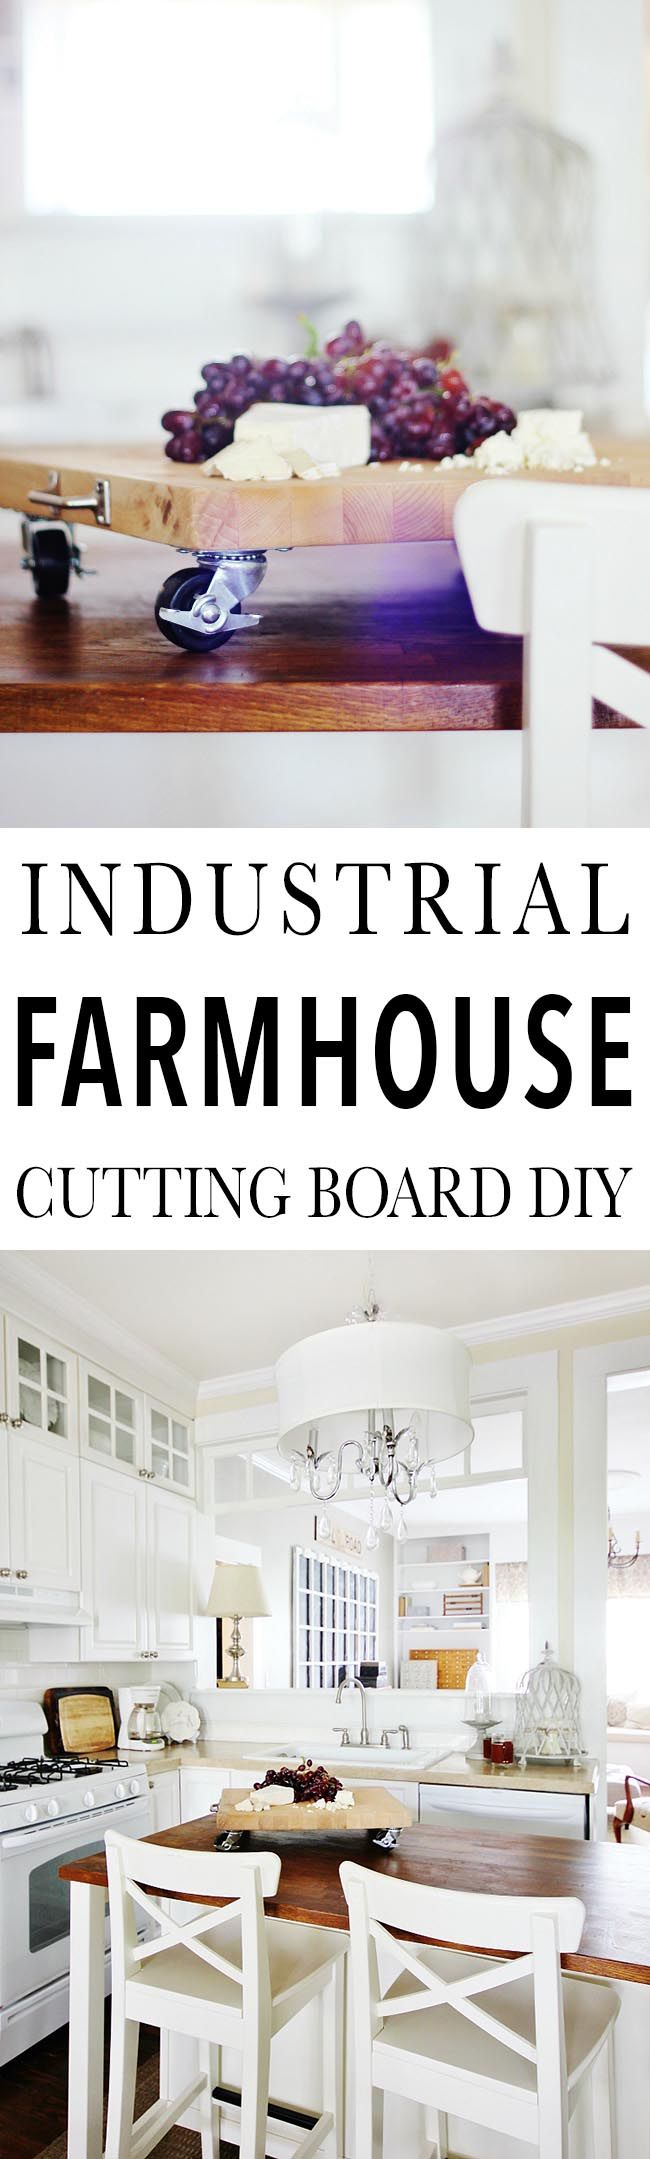 Industrial Farmhouse Cutting Board DIY (and a Brilliant Idea)